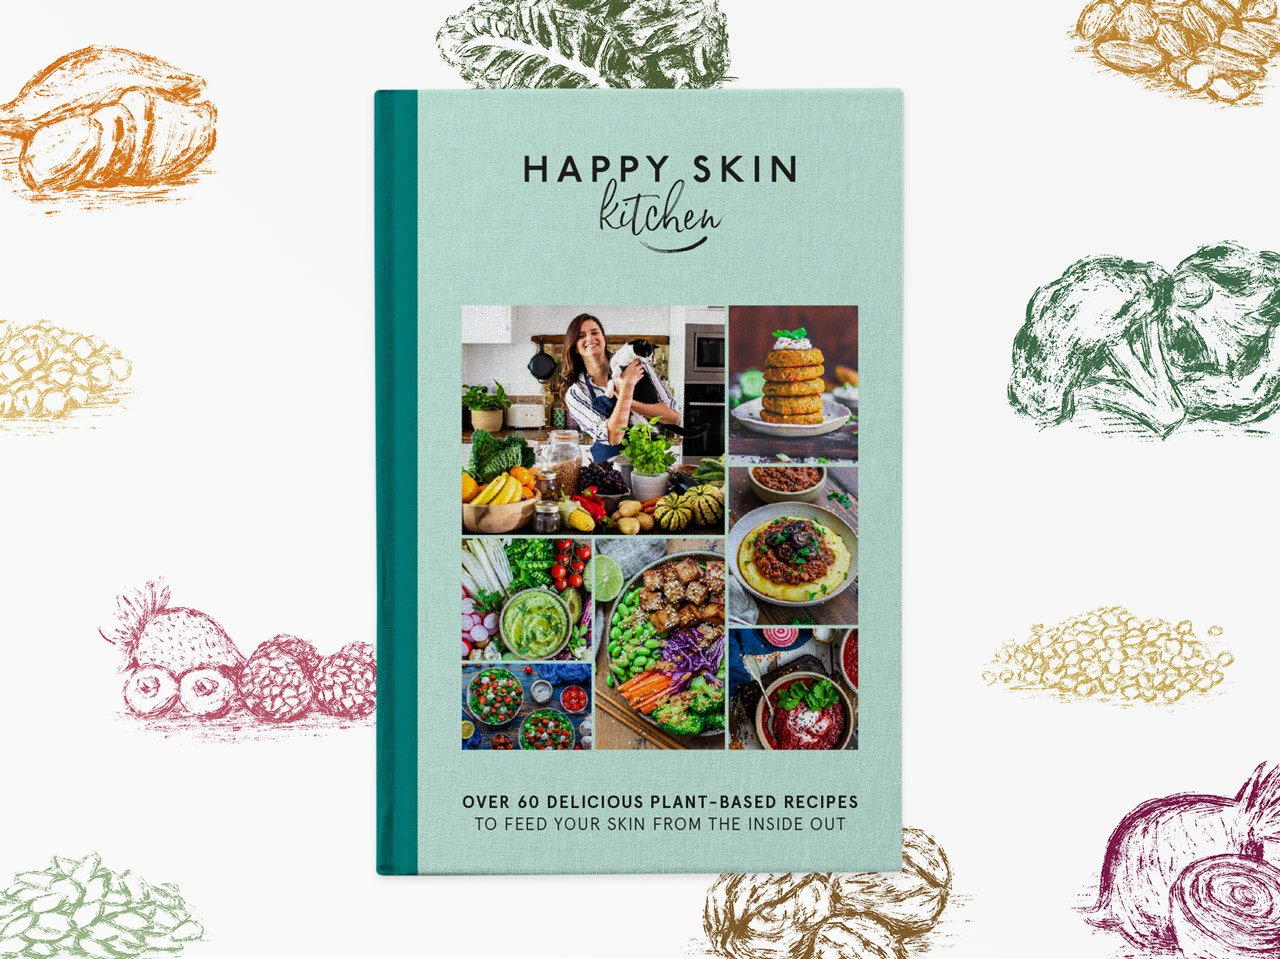 Happy-Skin-Kitchen-Book-Cover2